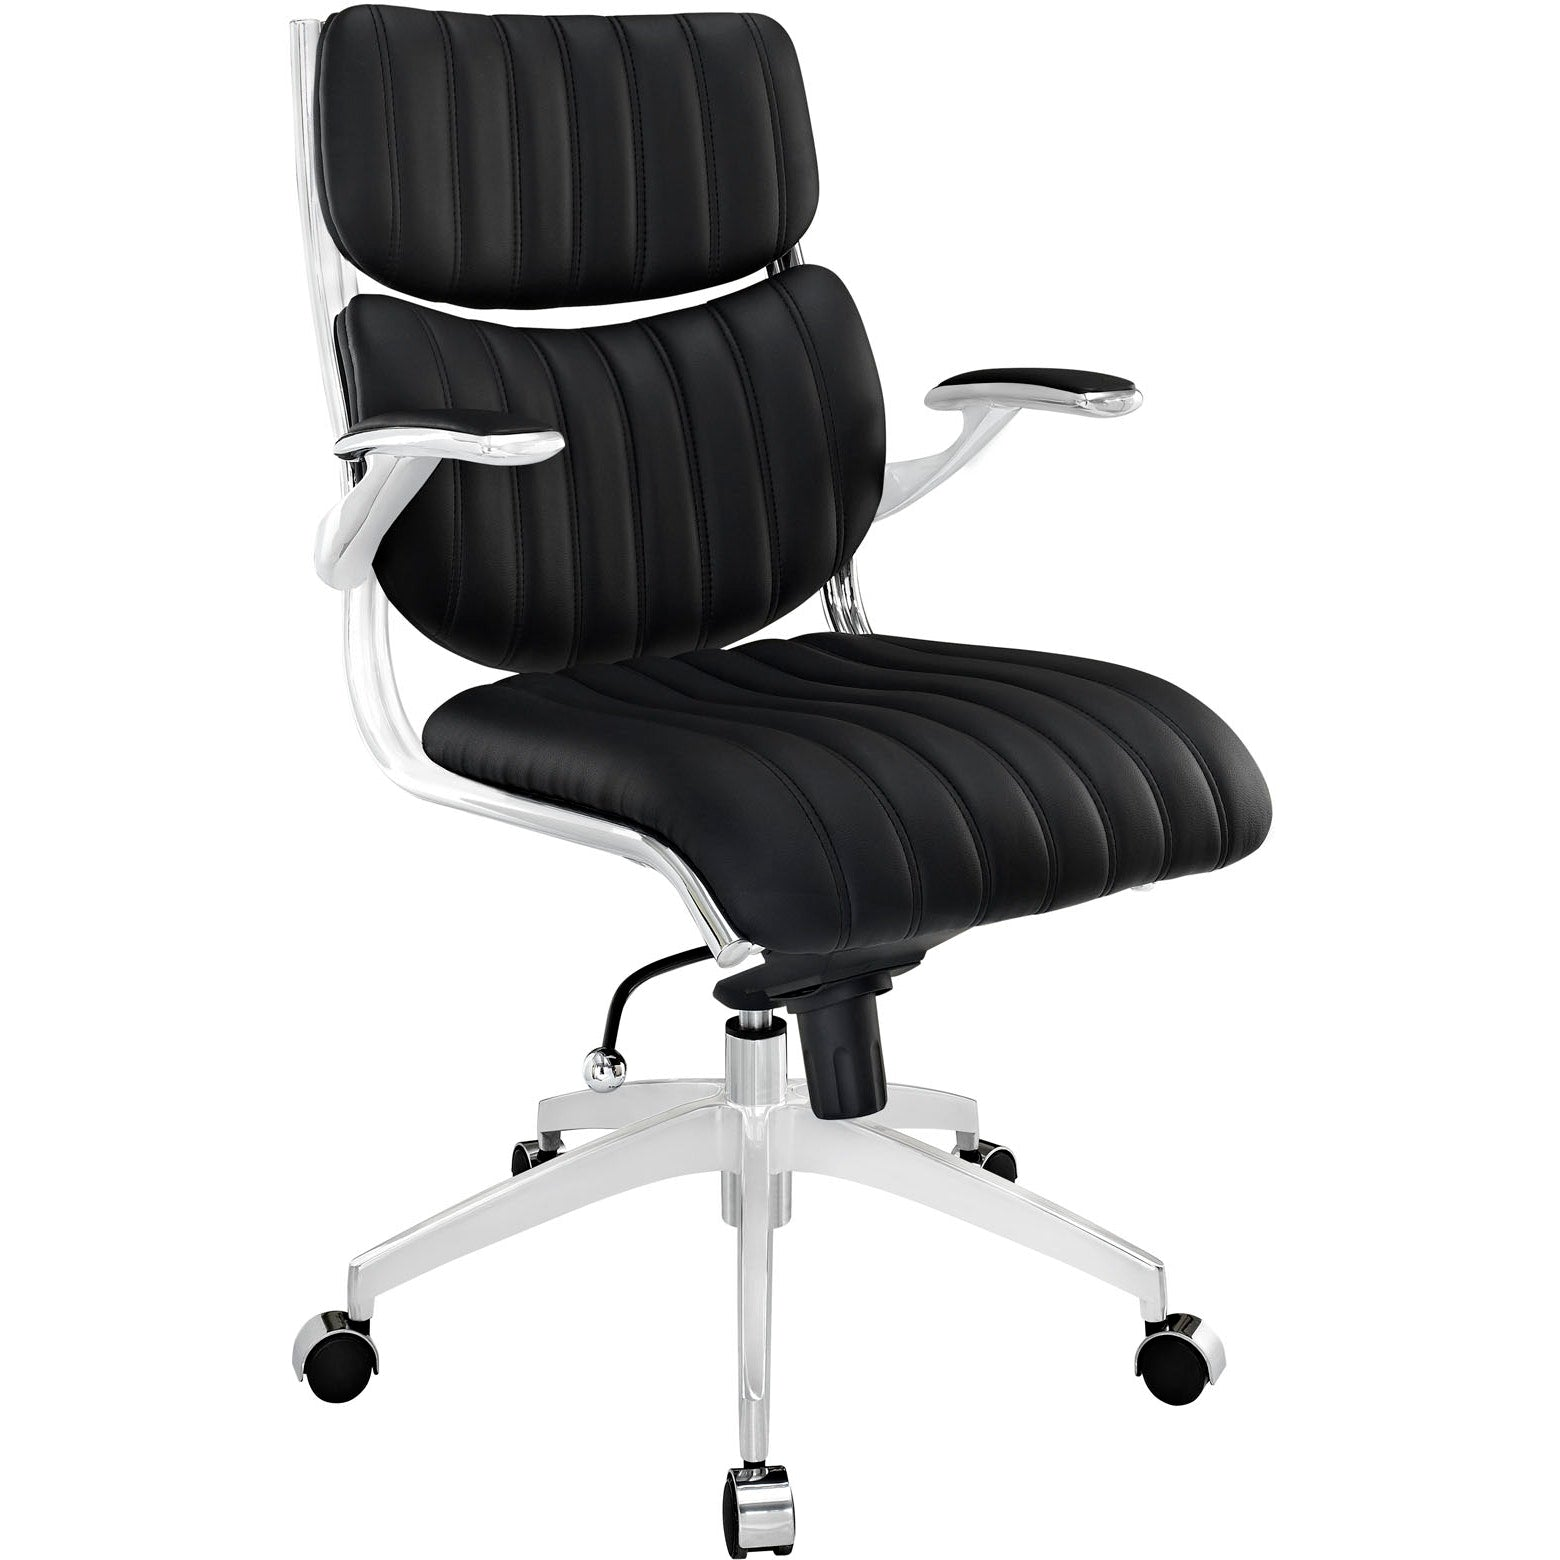 Escape Mid Back Office Chair - Black